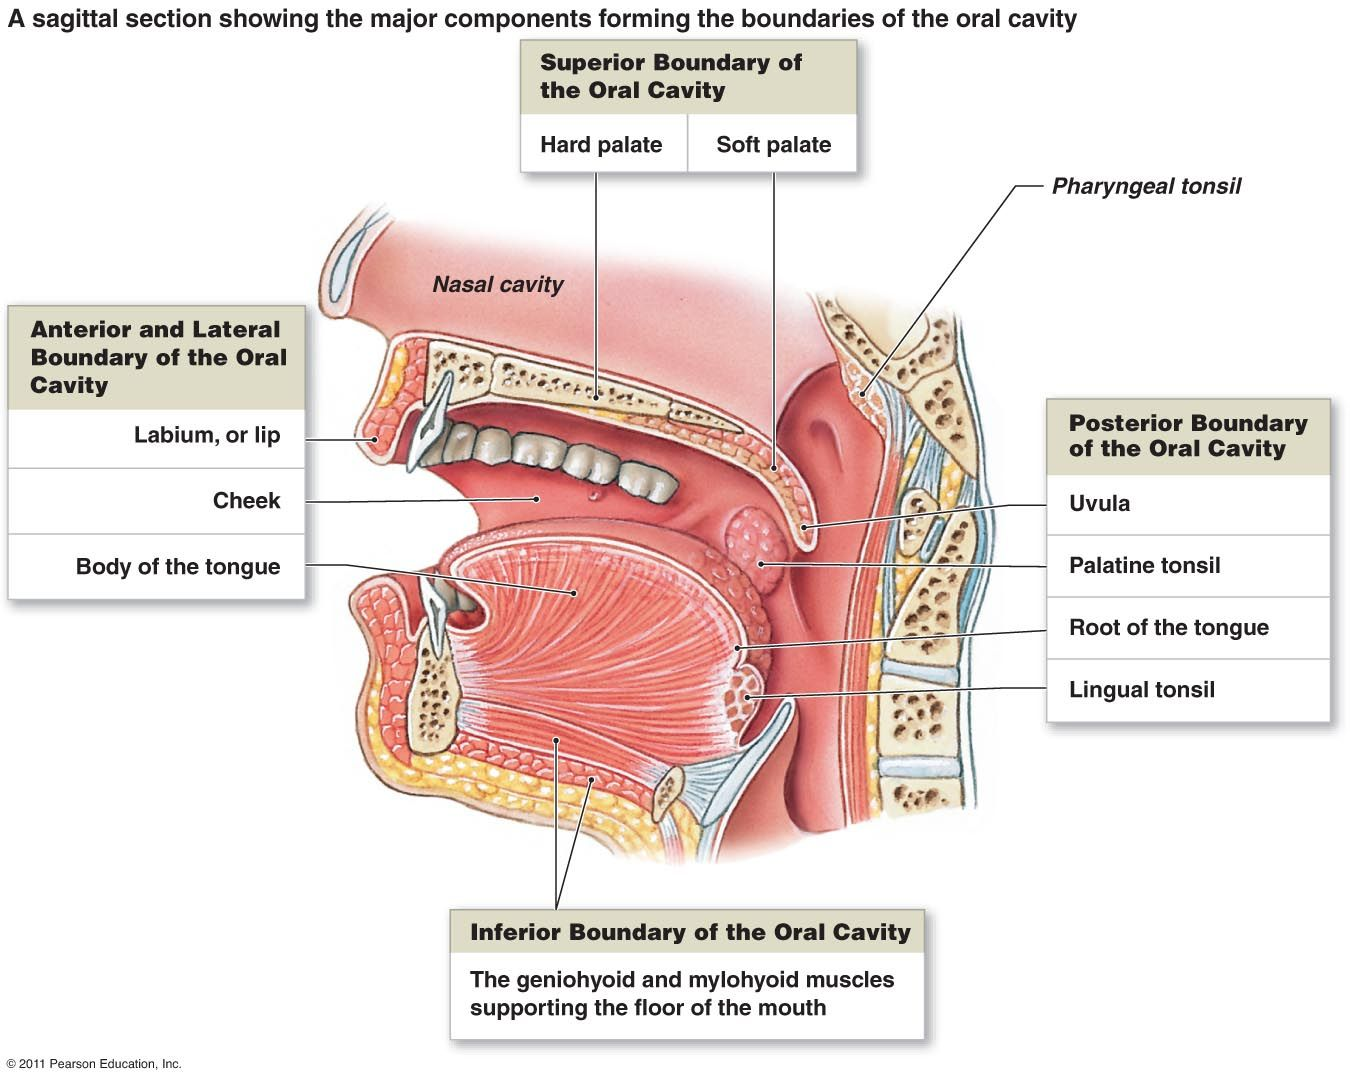 Oral Cavity A Sagittal Section Showing The Major Components Forming The Boundaries Of The Oral Cavity Throat Anatomy Human Mouth Human Anatomy And Physiology